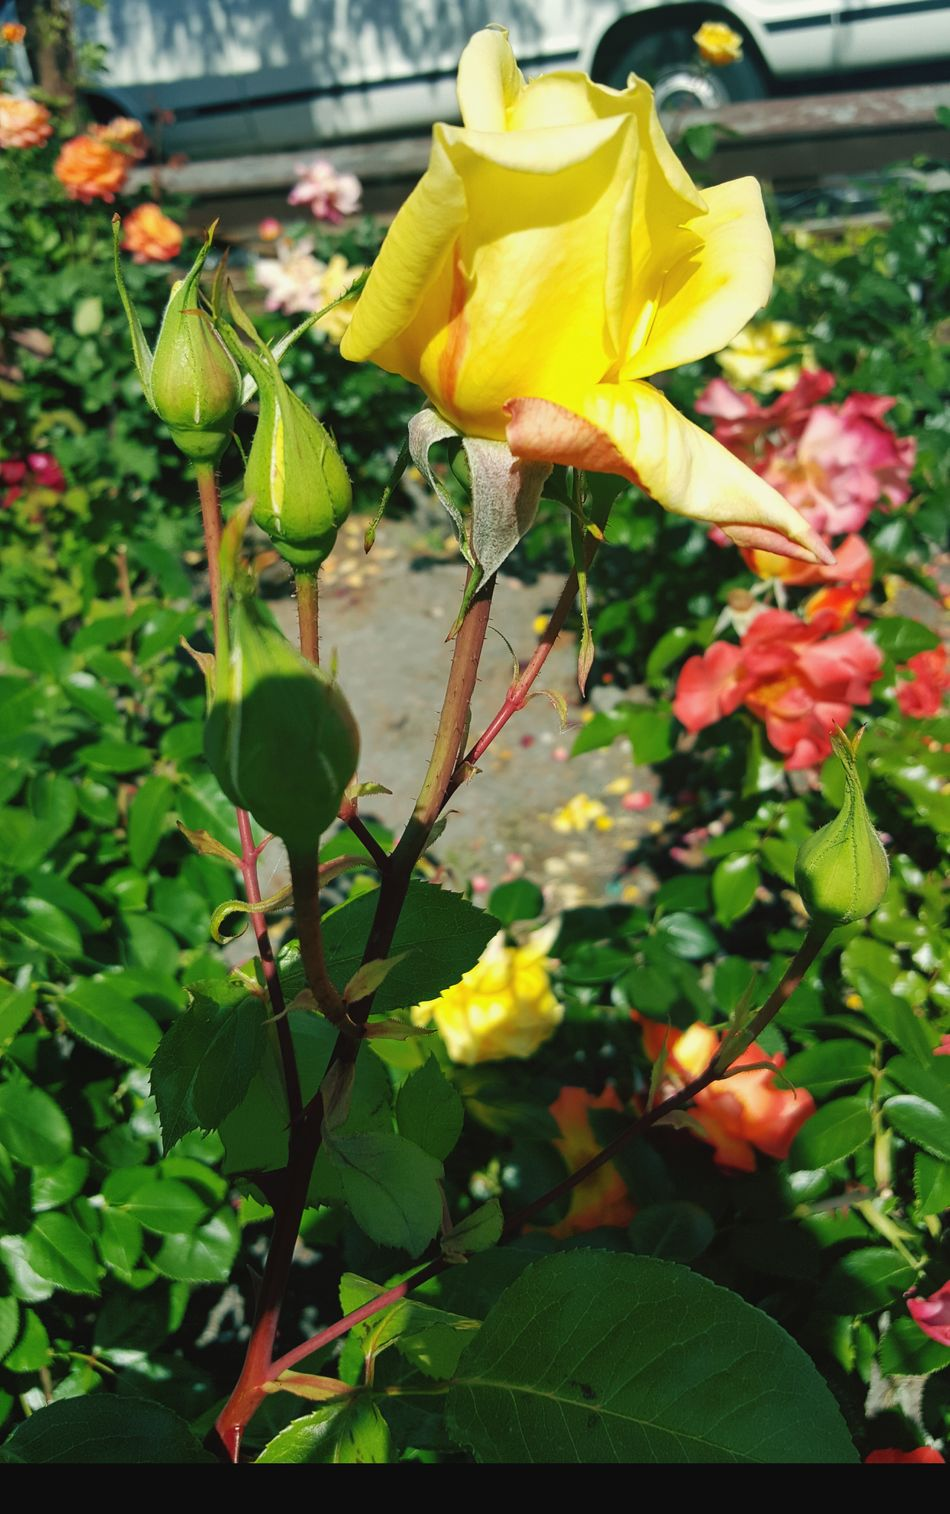 Yellow Leaf Flower Growth Outdoors Plant Freshness Fragility Day Nature Beauty In Nature Close-up No People Flower Head Yellow Rose Roses Blooming